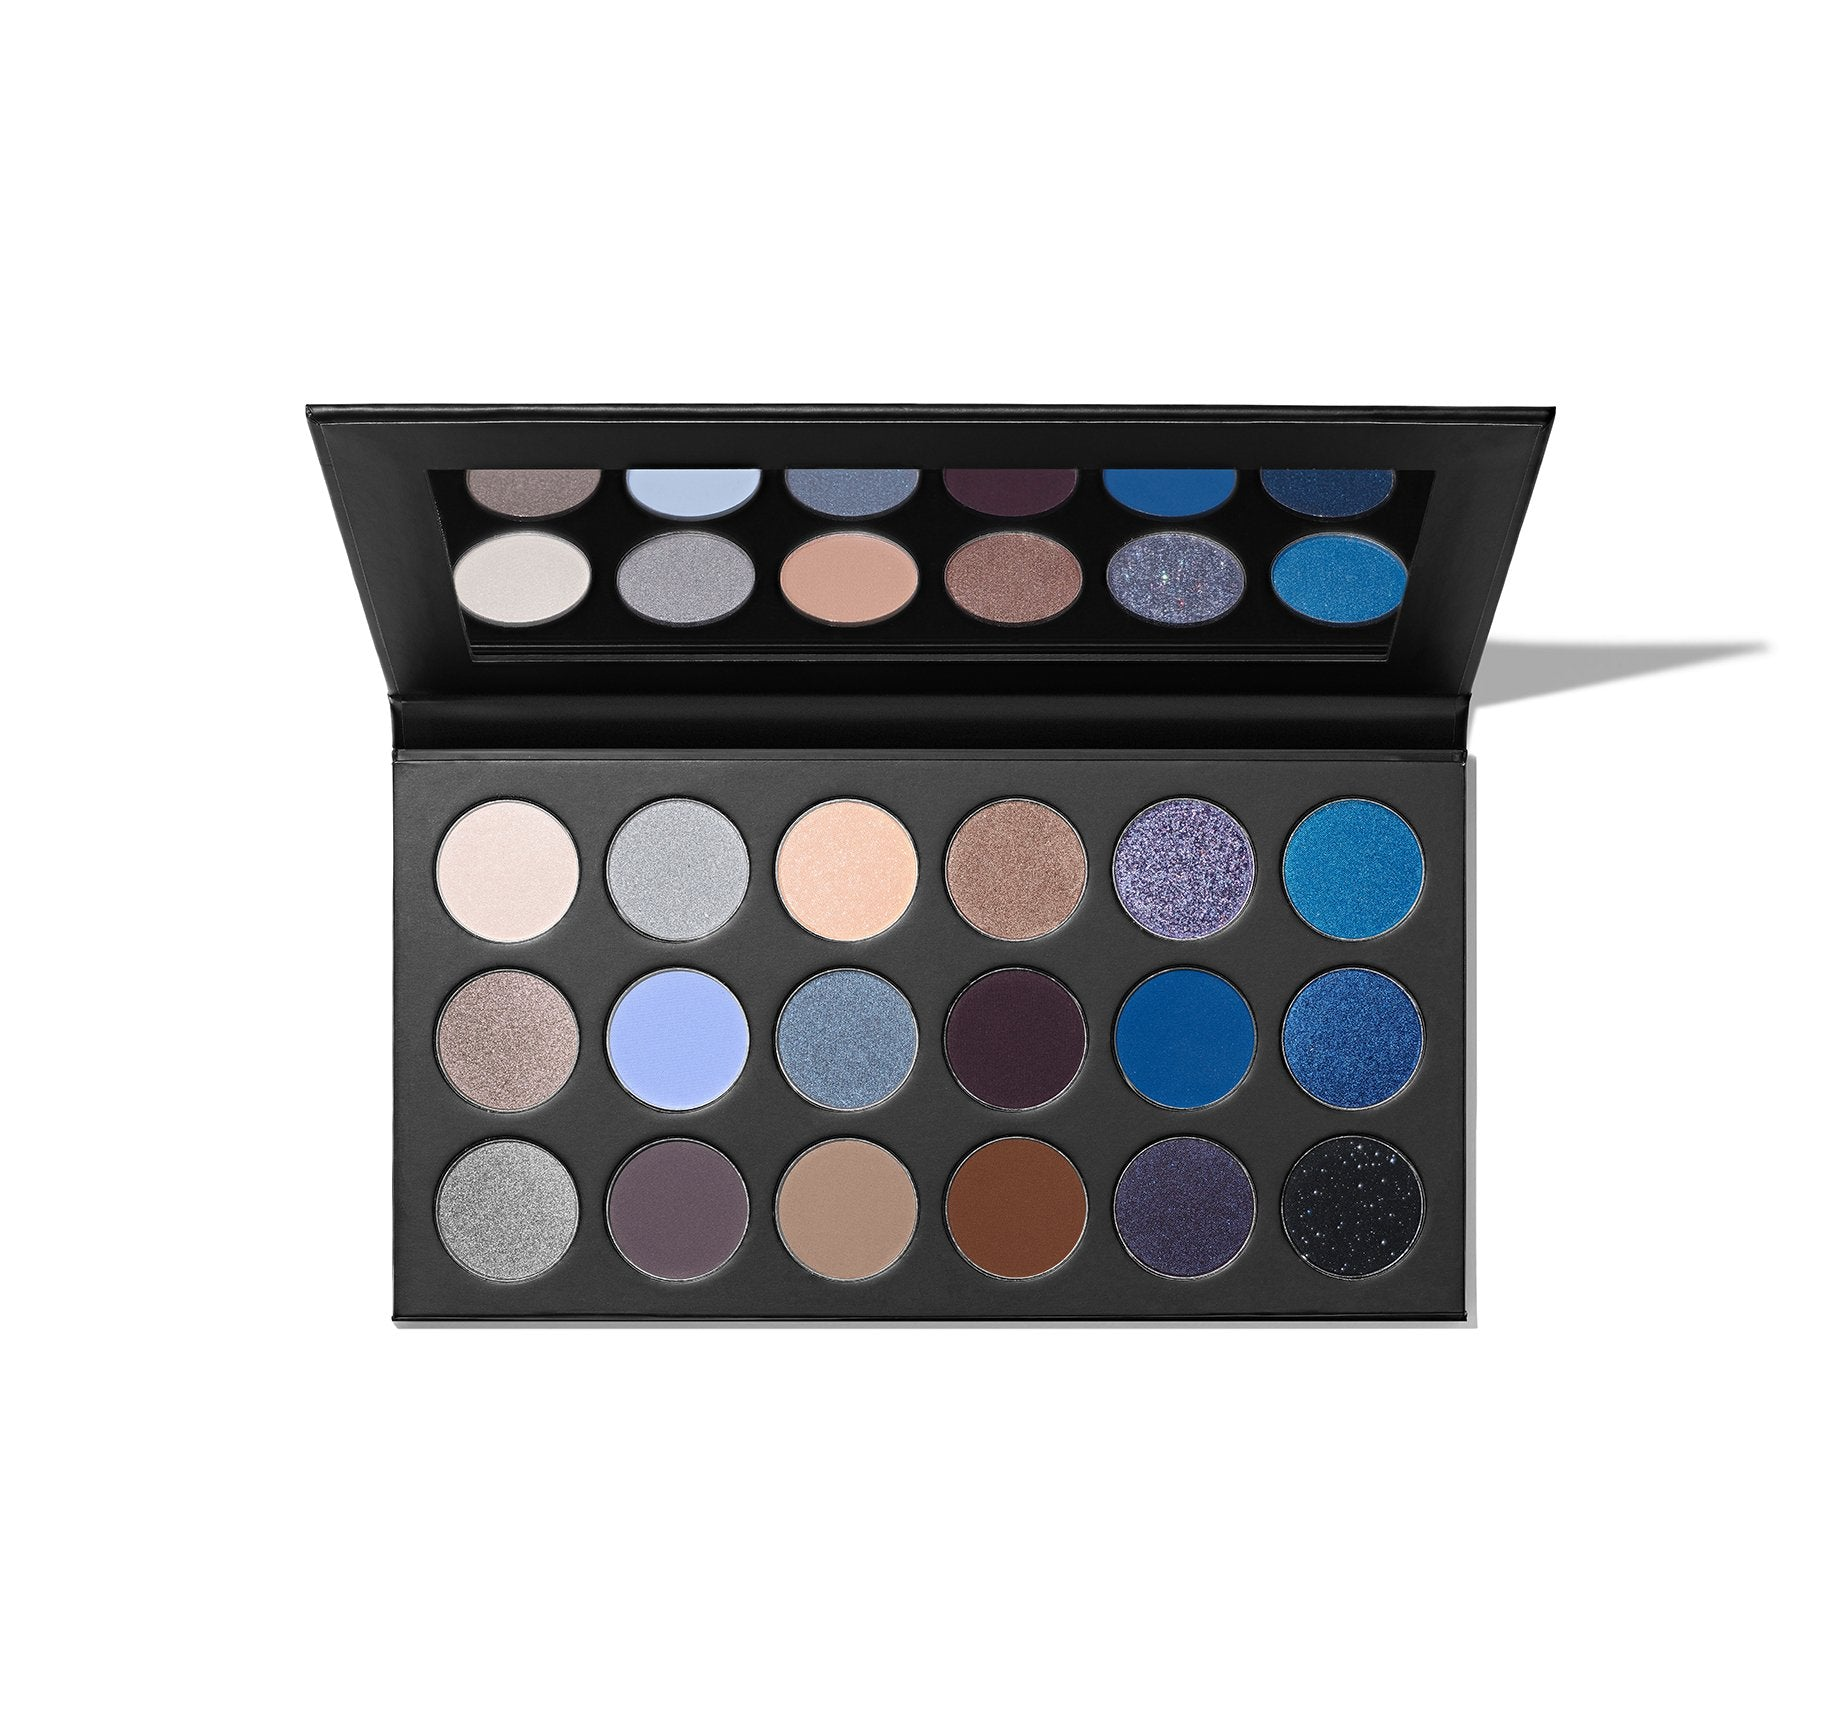 18A BLUE YA AWAY ARTISTRY PALETTE, view larger image